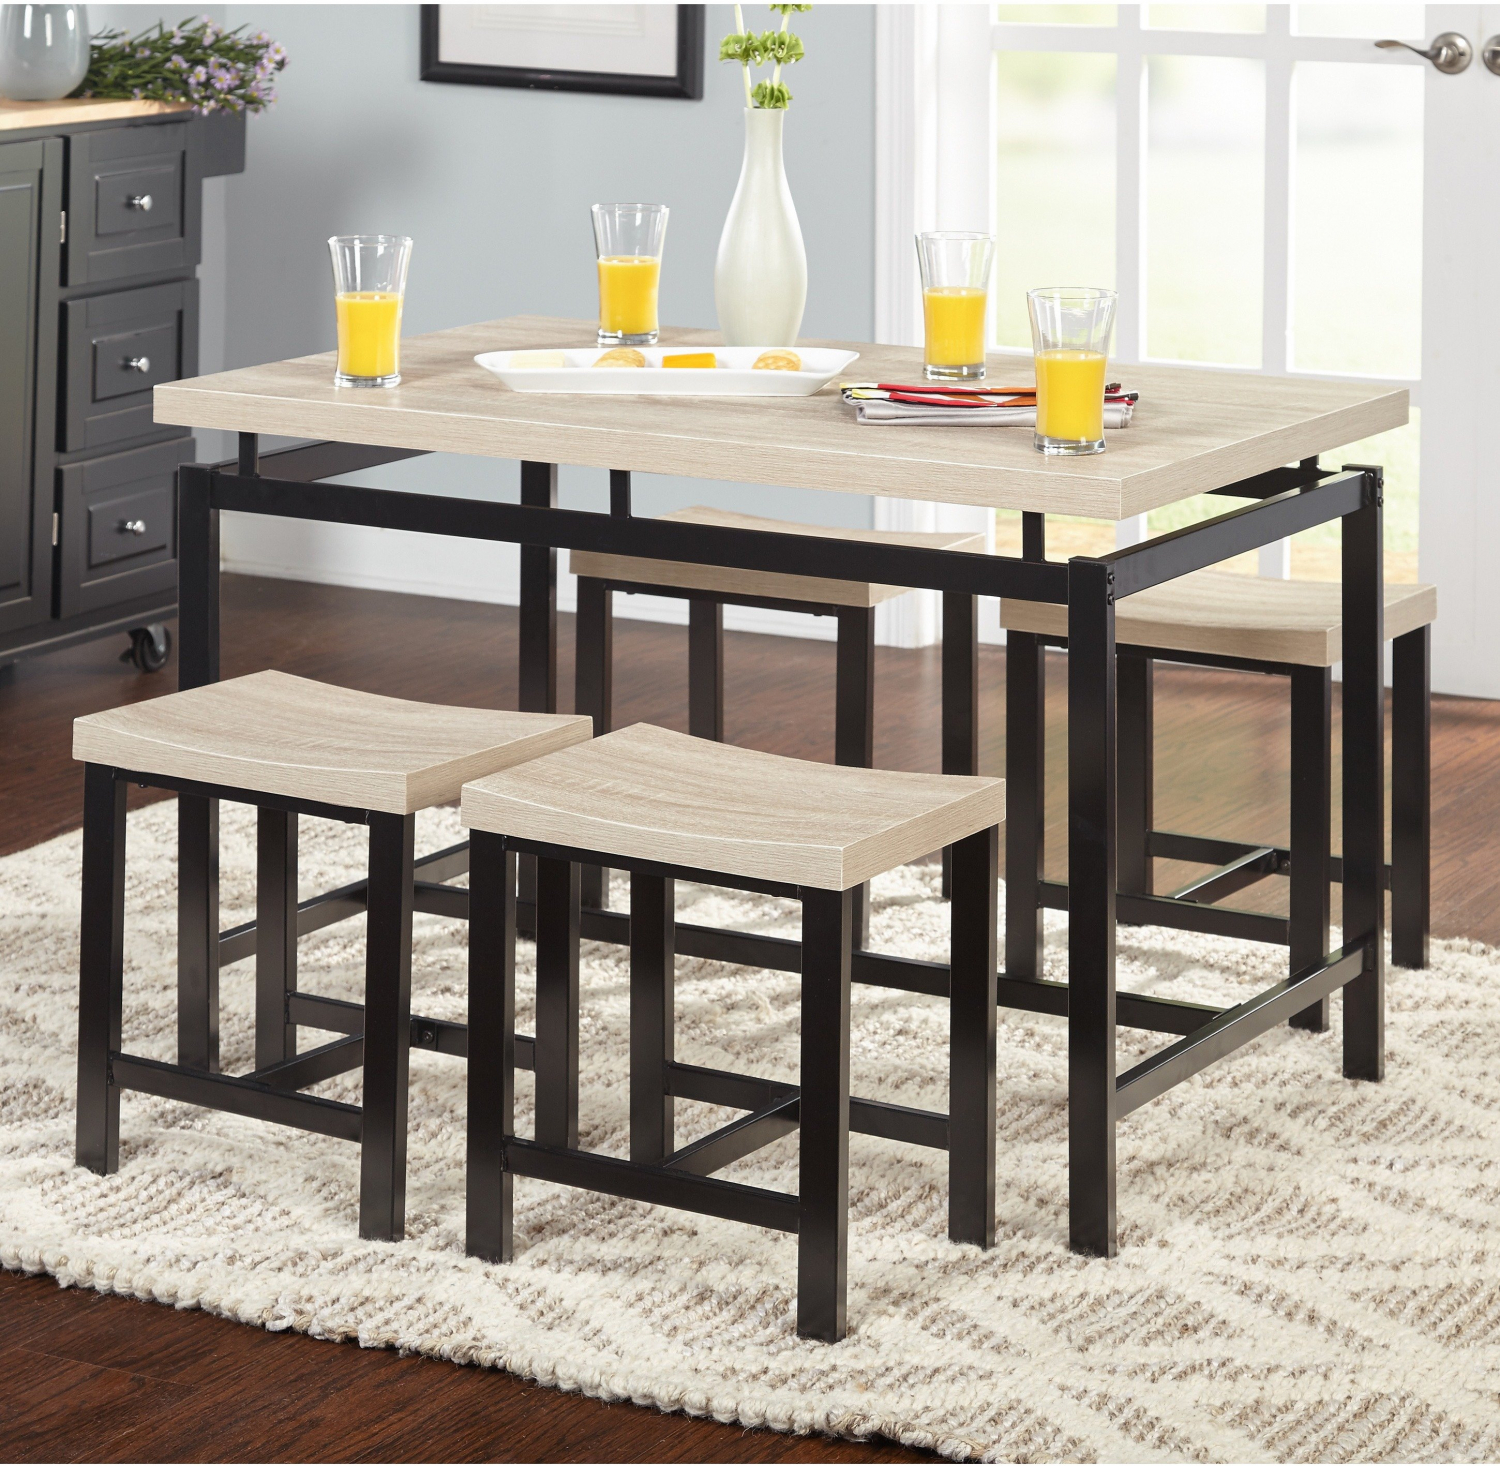 . Details about Simple Living Delano Dining Set 5 Piece Space Saving Stool  Breakfast Nook